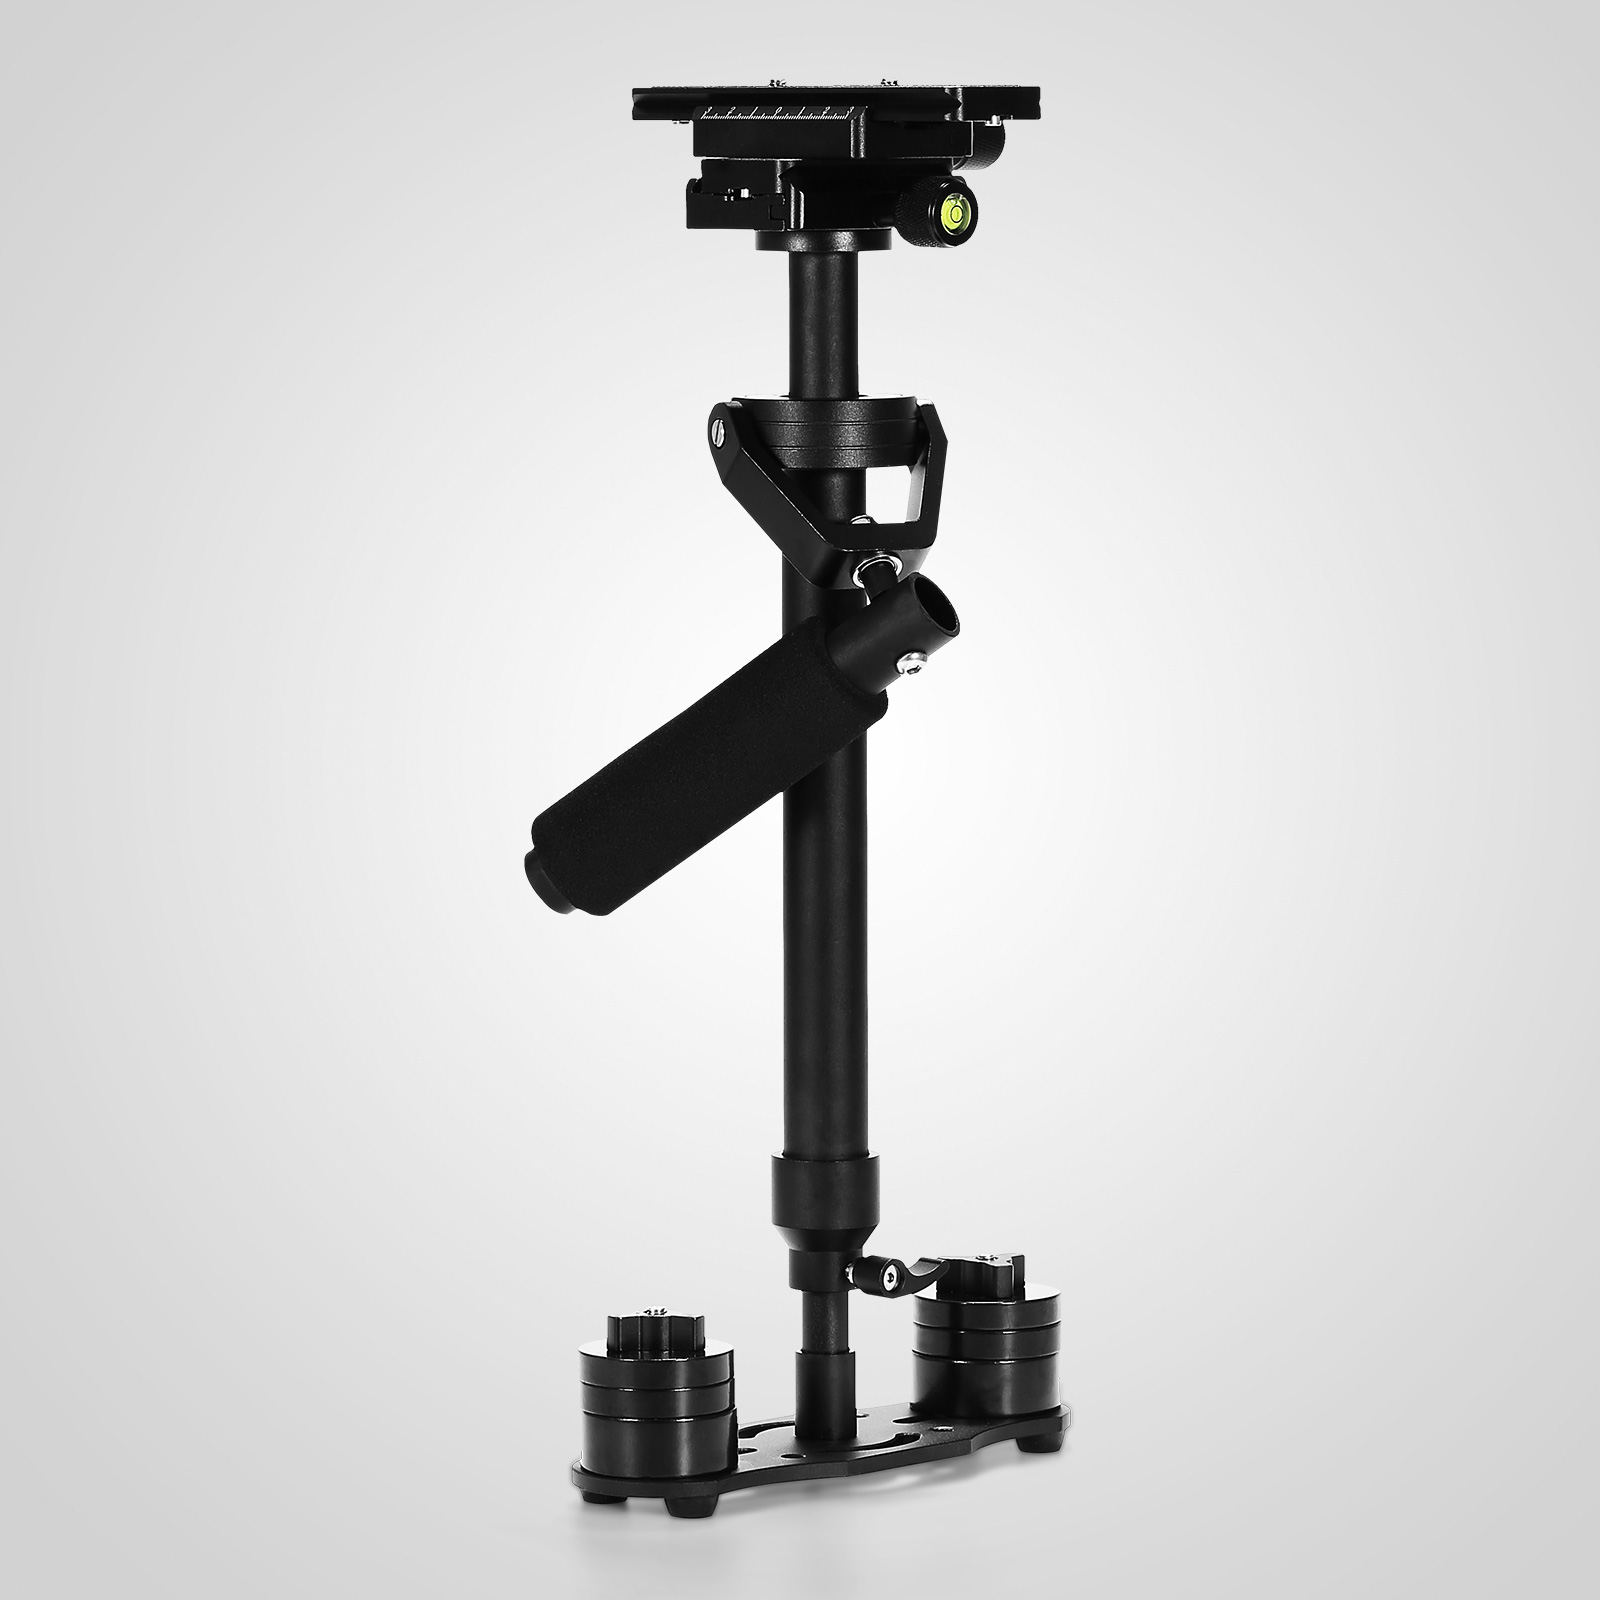 S60T-S60N-Handheld-Steady-Stabilizer-360-For-DSLR-Canon-Camera thumbnail 18